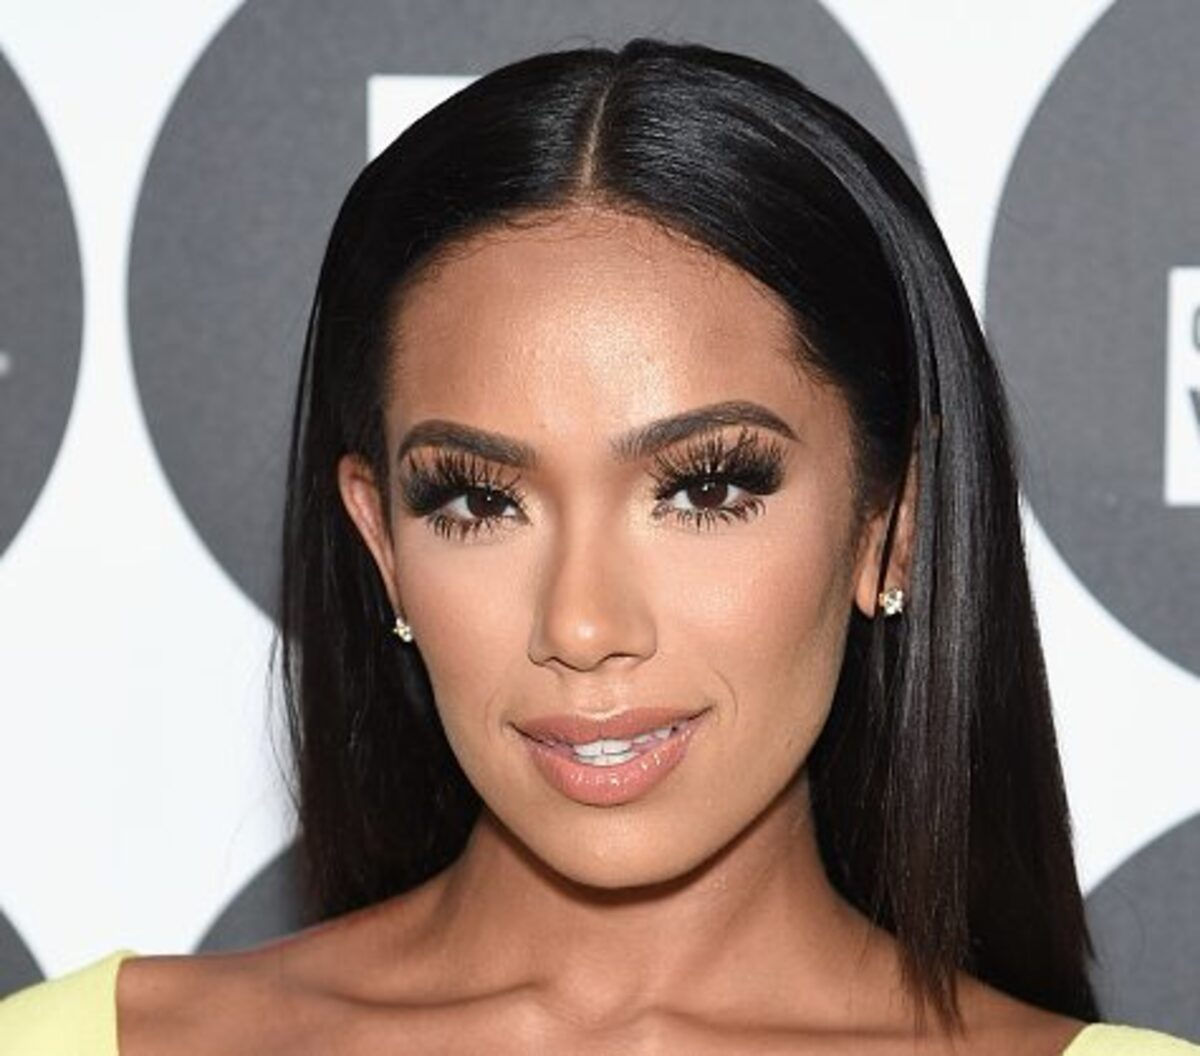 erica-mena-surprises-fans-with-exclusive-content-on-her-onlyfans-account